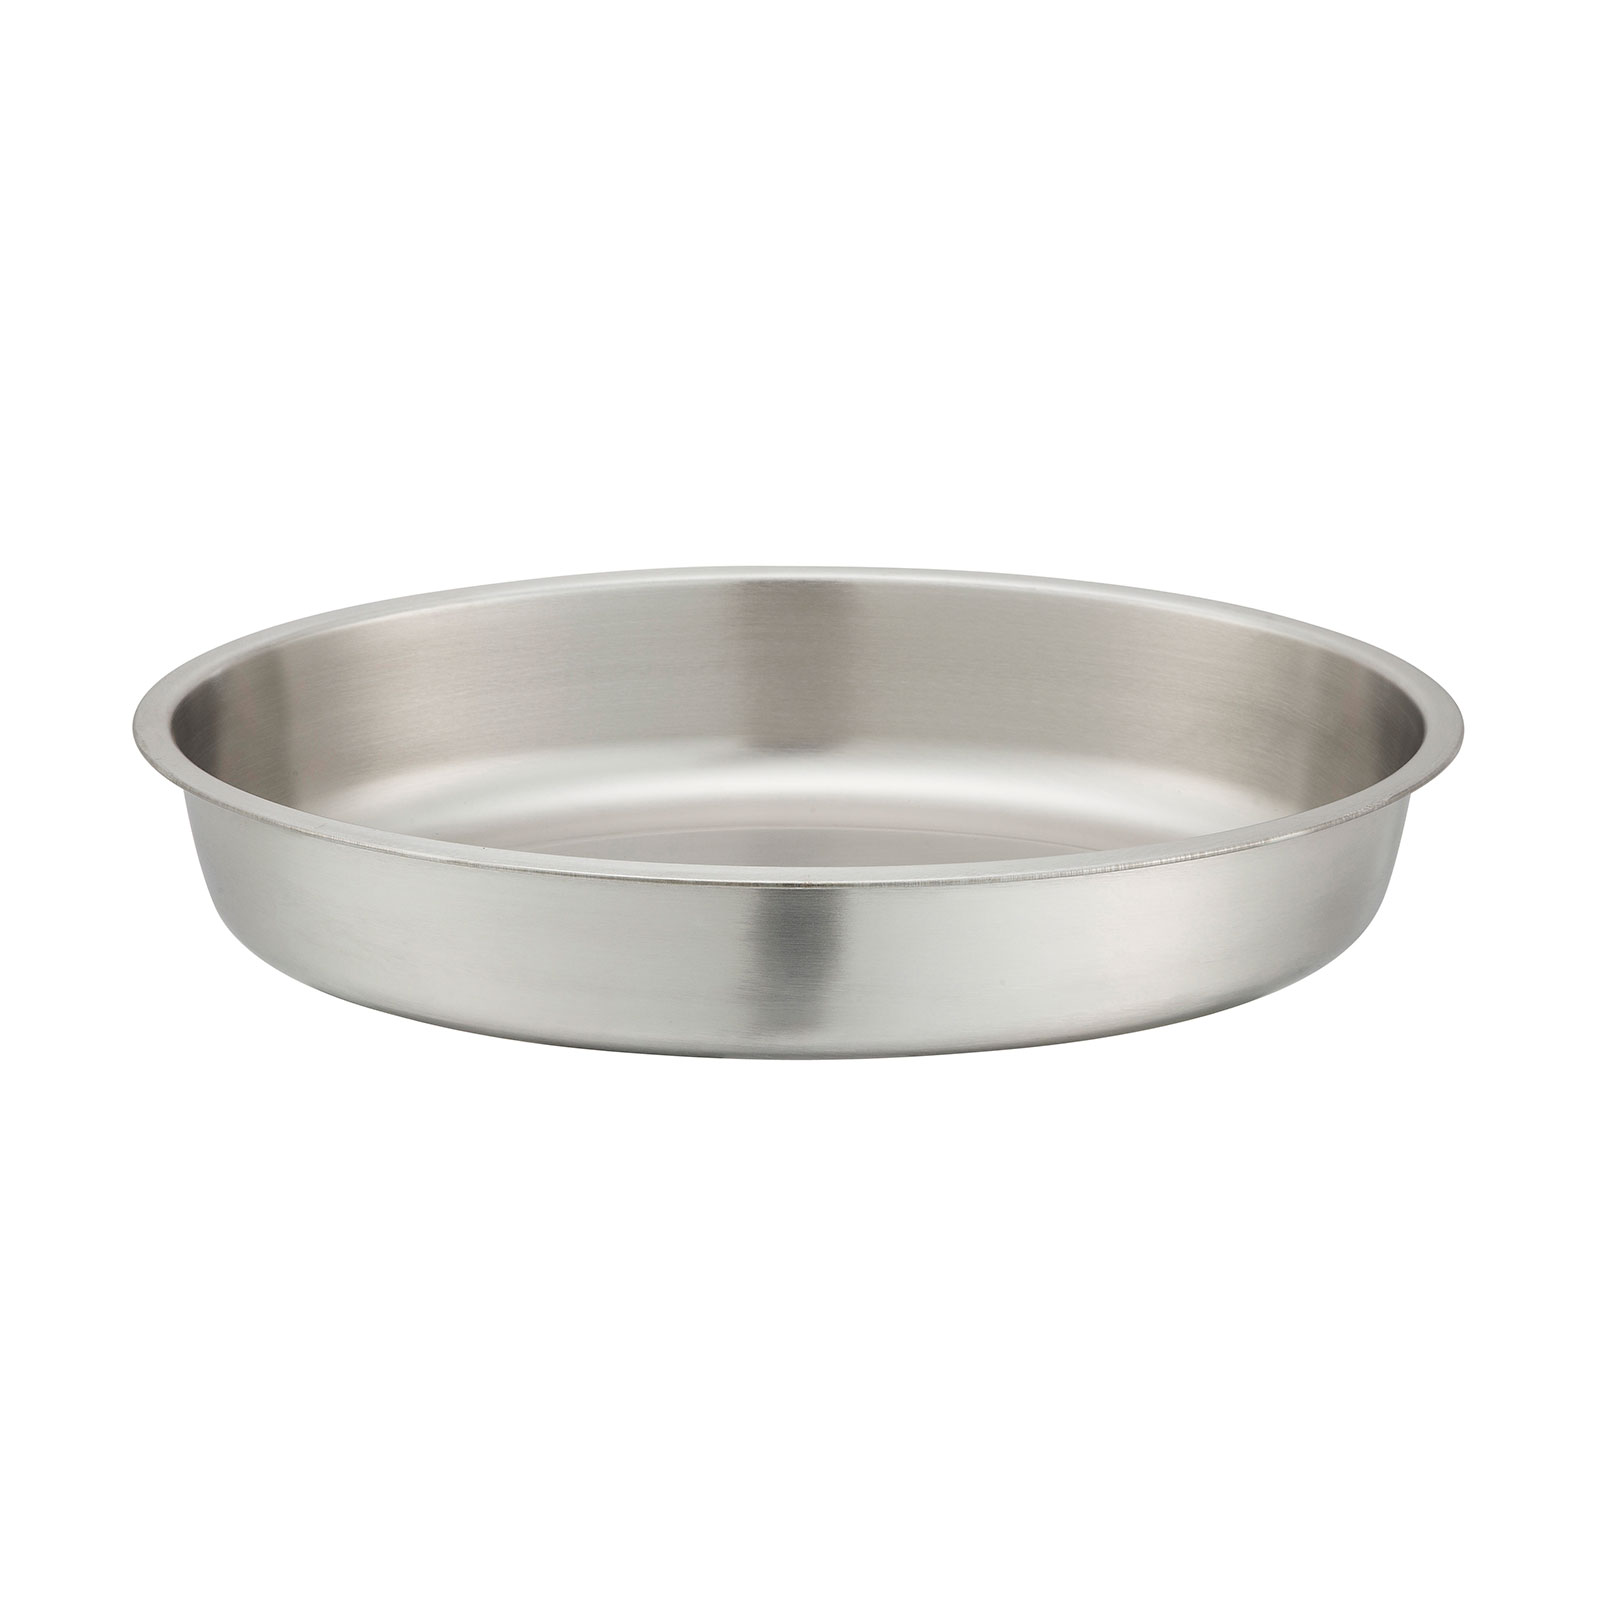 Winco 202-WP chafing dish pan